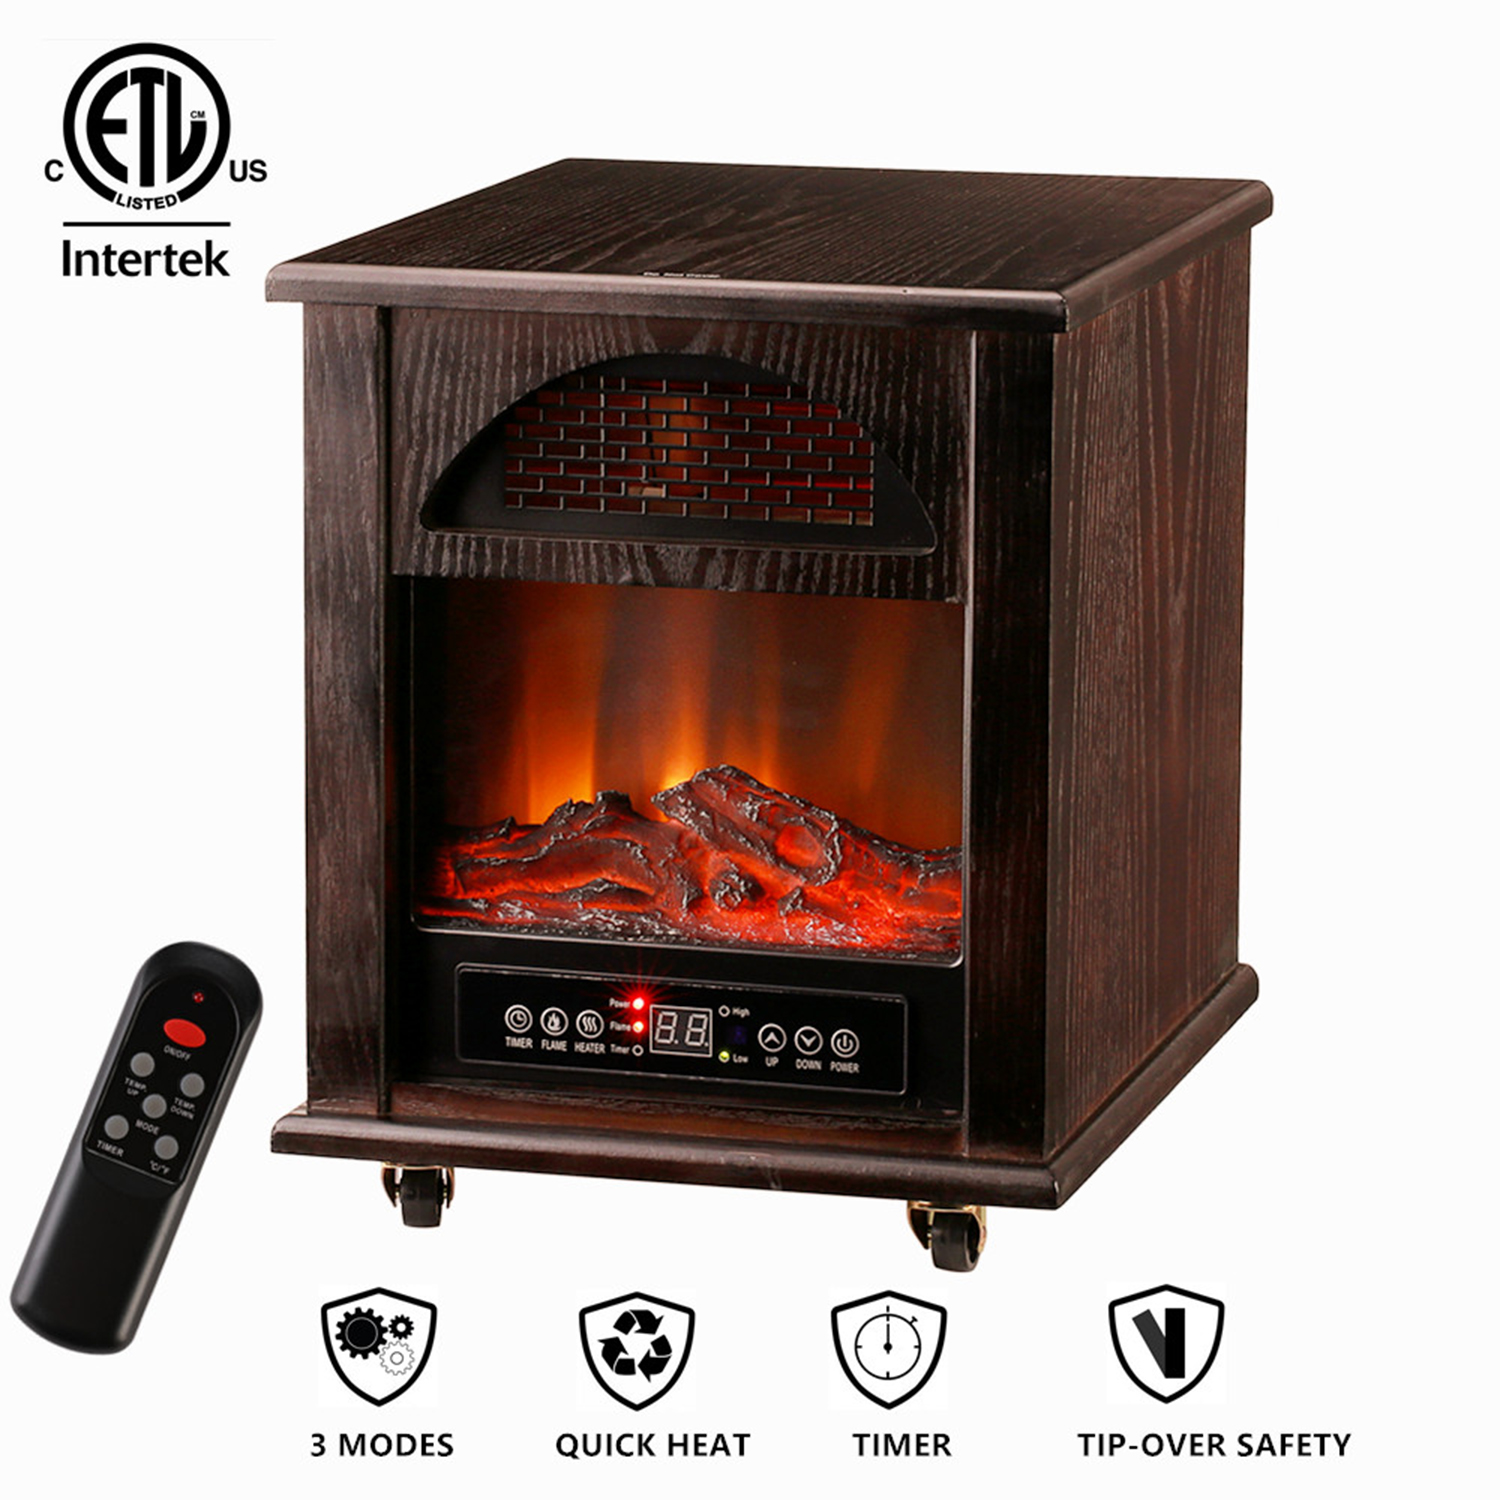 Ainfox Infrared Quartz Electric Fireplace Stove Space Heater , 1000W-1500W  Heating Systems with Thermostat, Tip-Over and overheat protection,Remote Control 12hr Timer & Filter (Dark Brown)